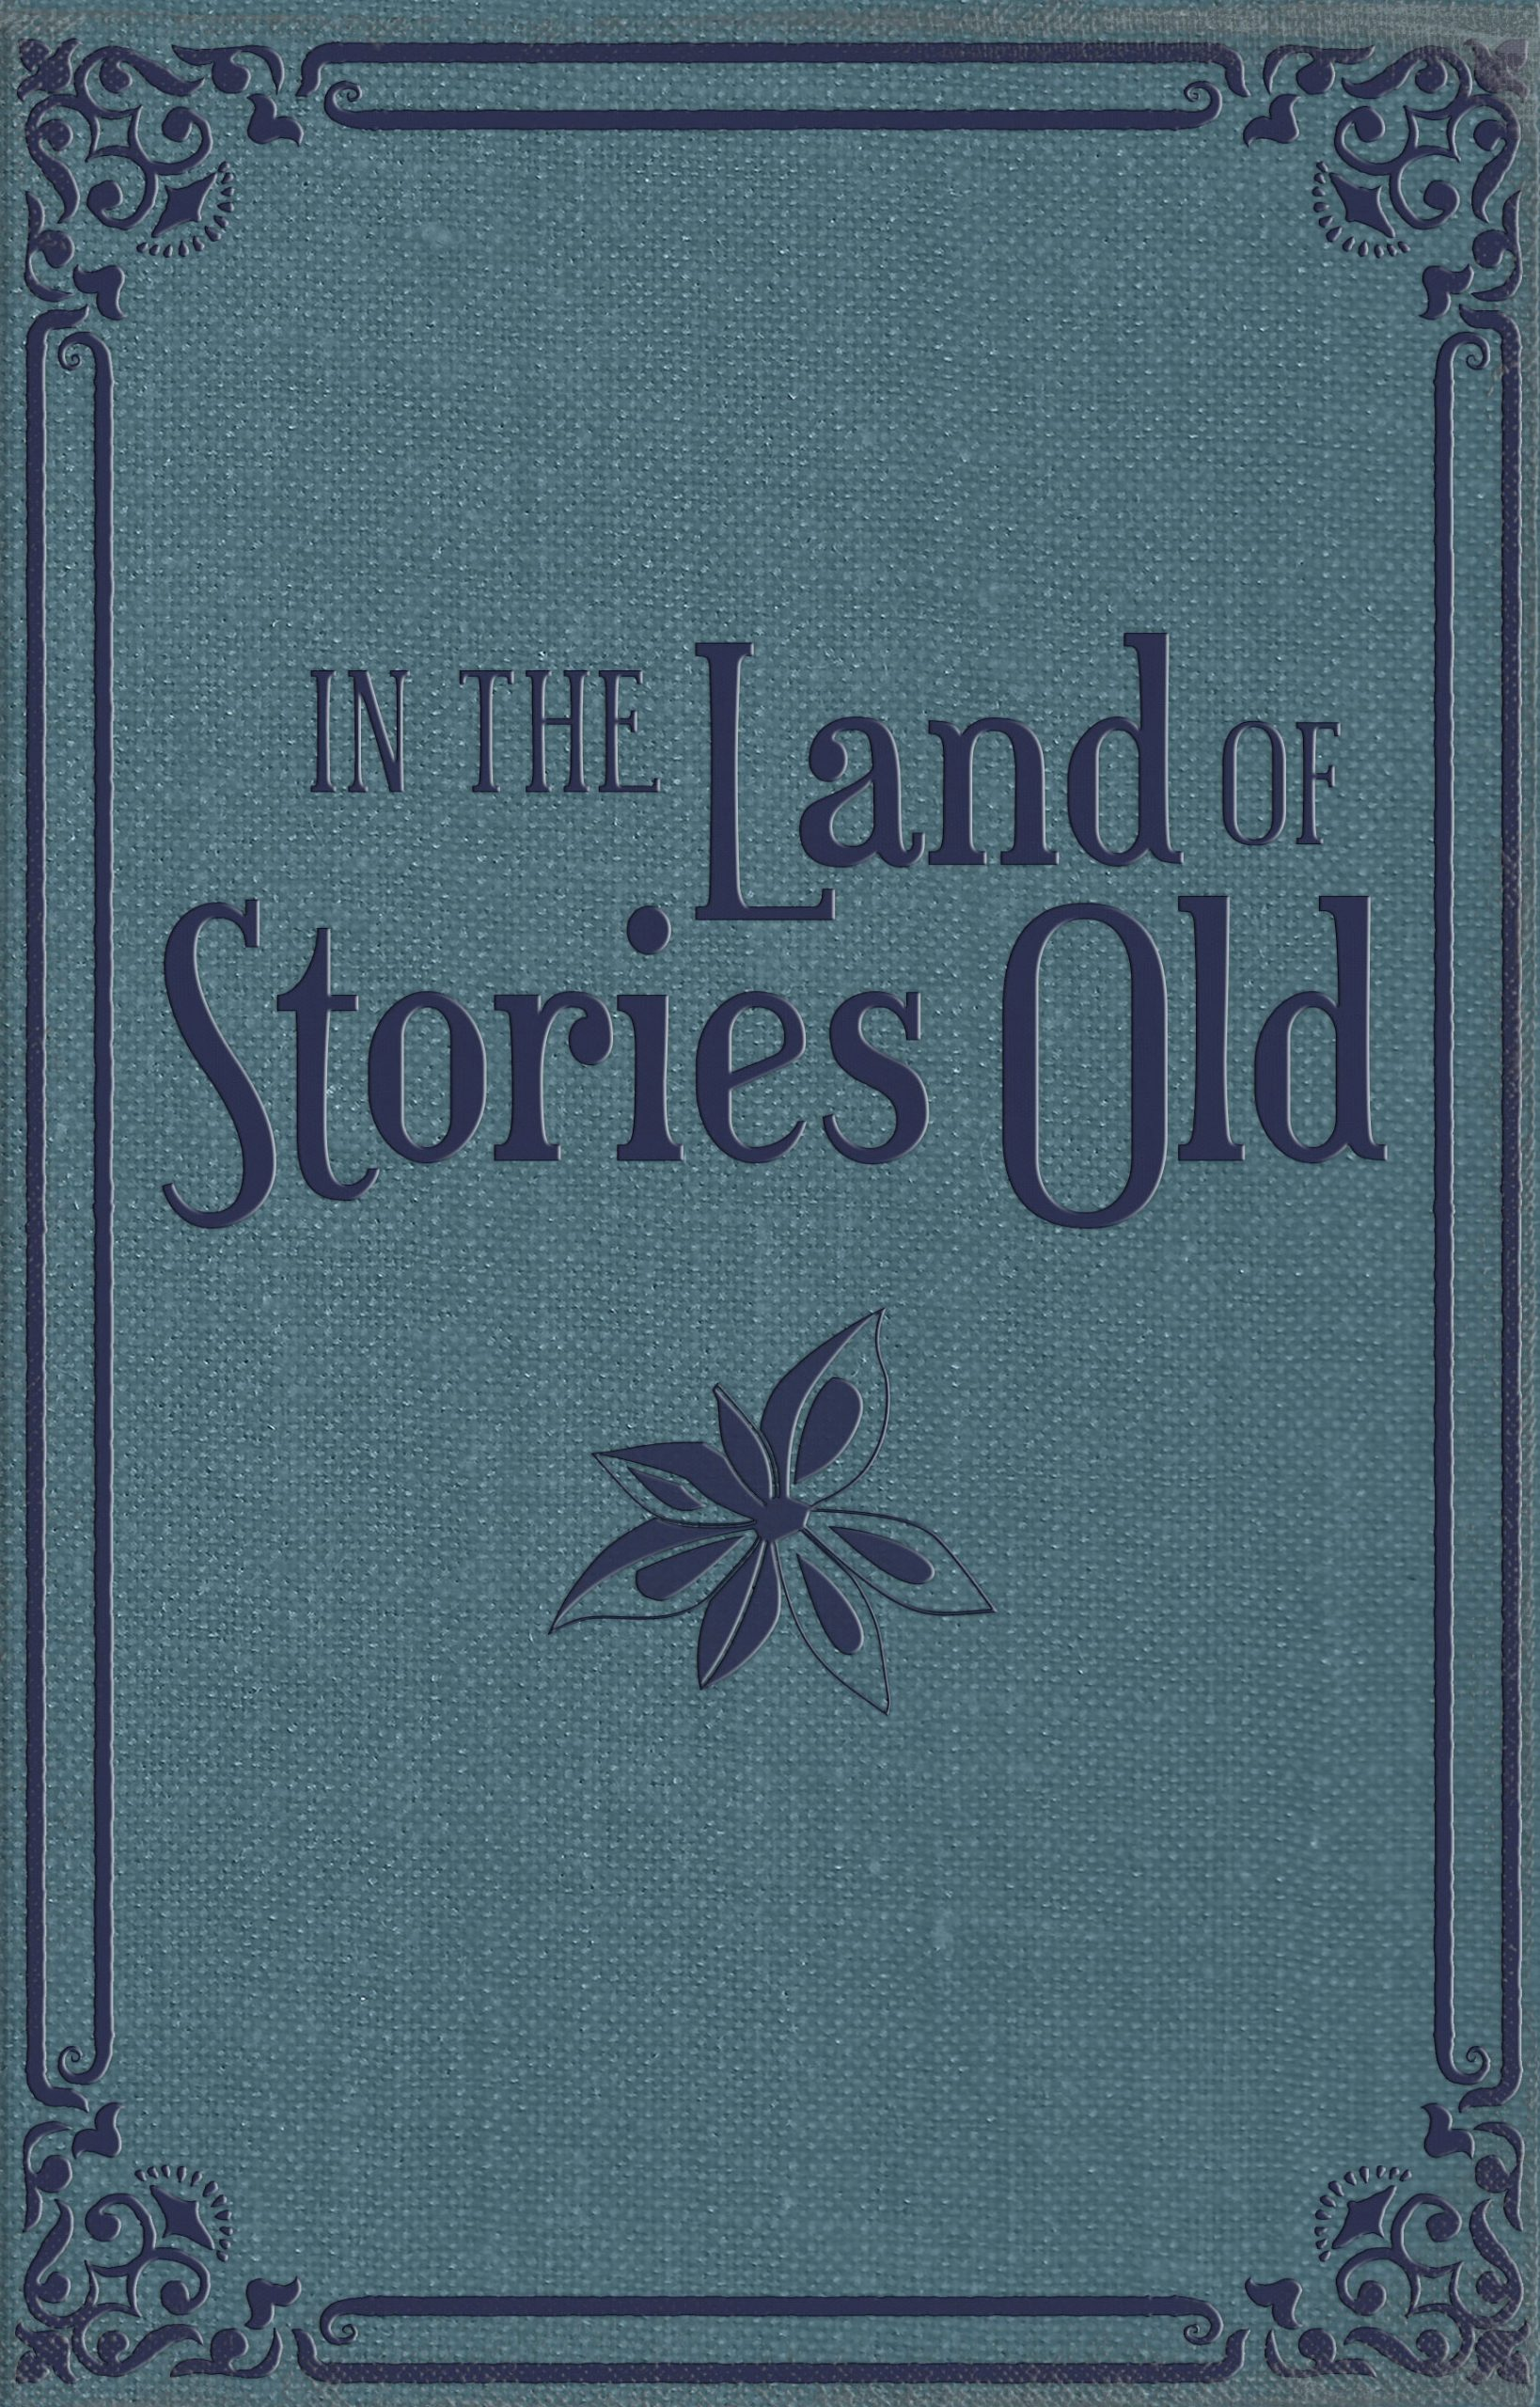 front cover for In the Land of Stories Old